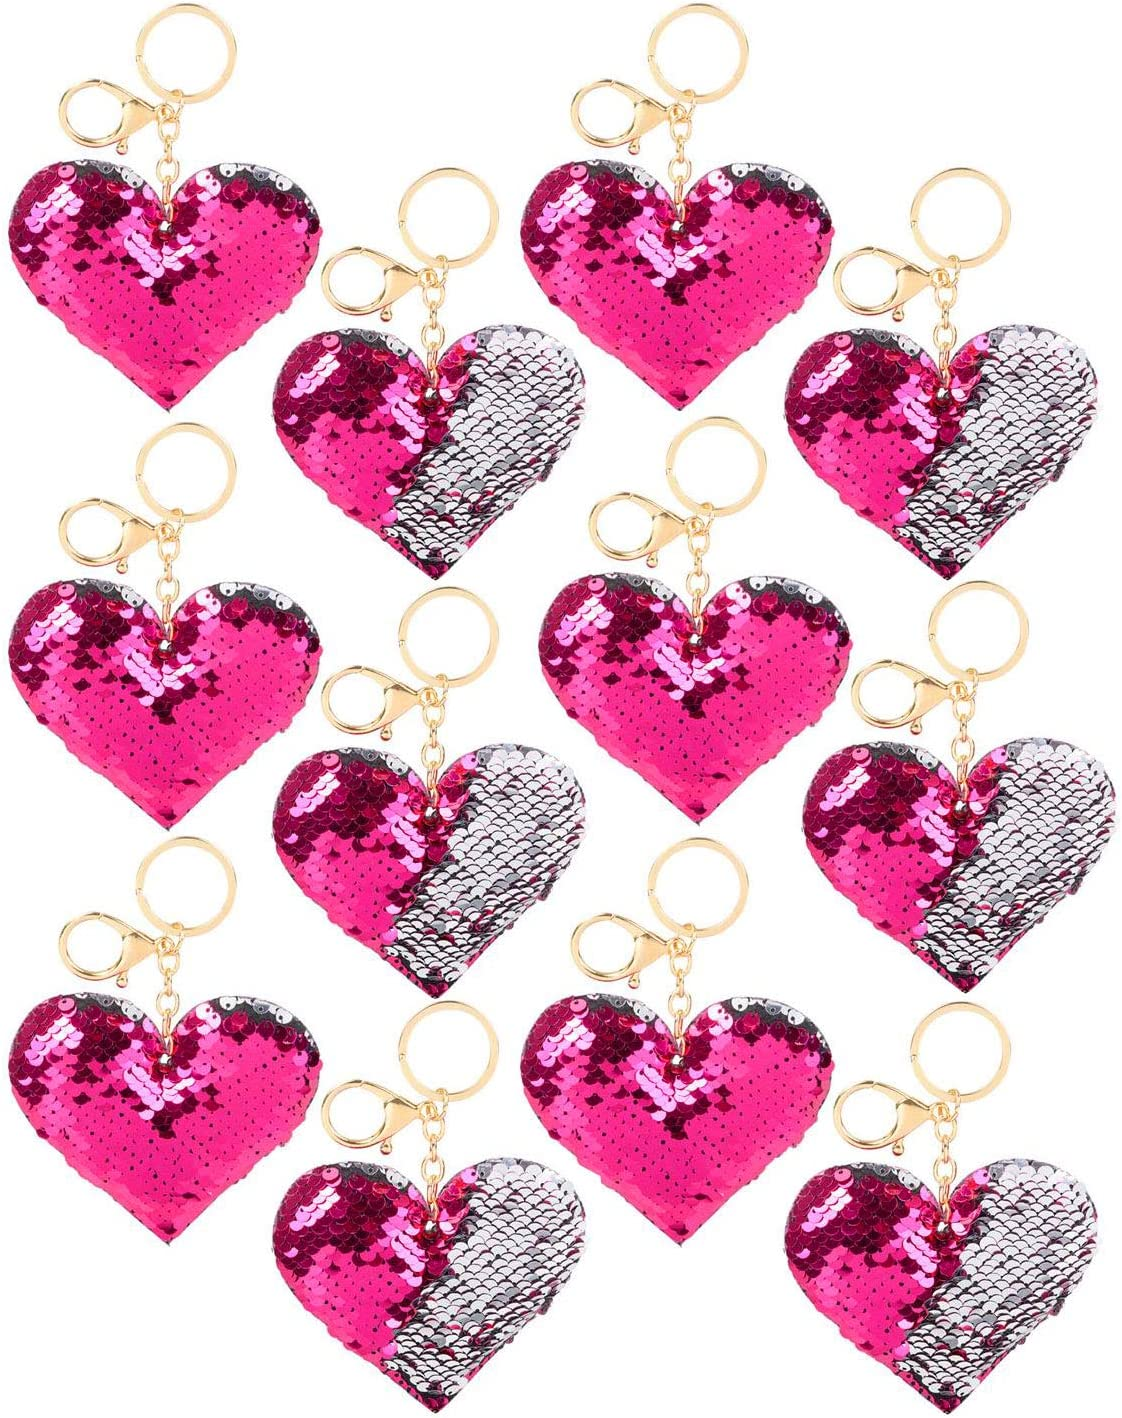 12 Pack and 1 Triangle Eraser Easter Baskets Party Favors Heart Sequin Key Chain Flip Sequins Key Ring Charm Prizes Stocking Stuffers Valentines Day